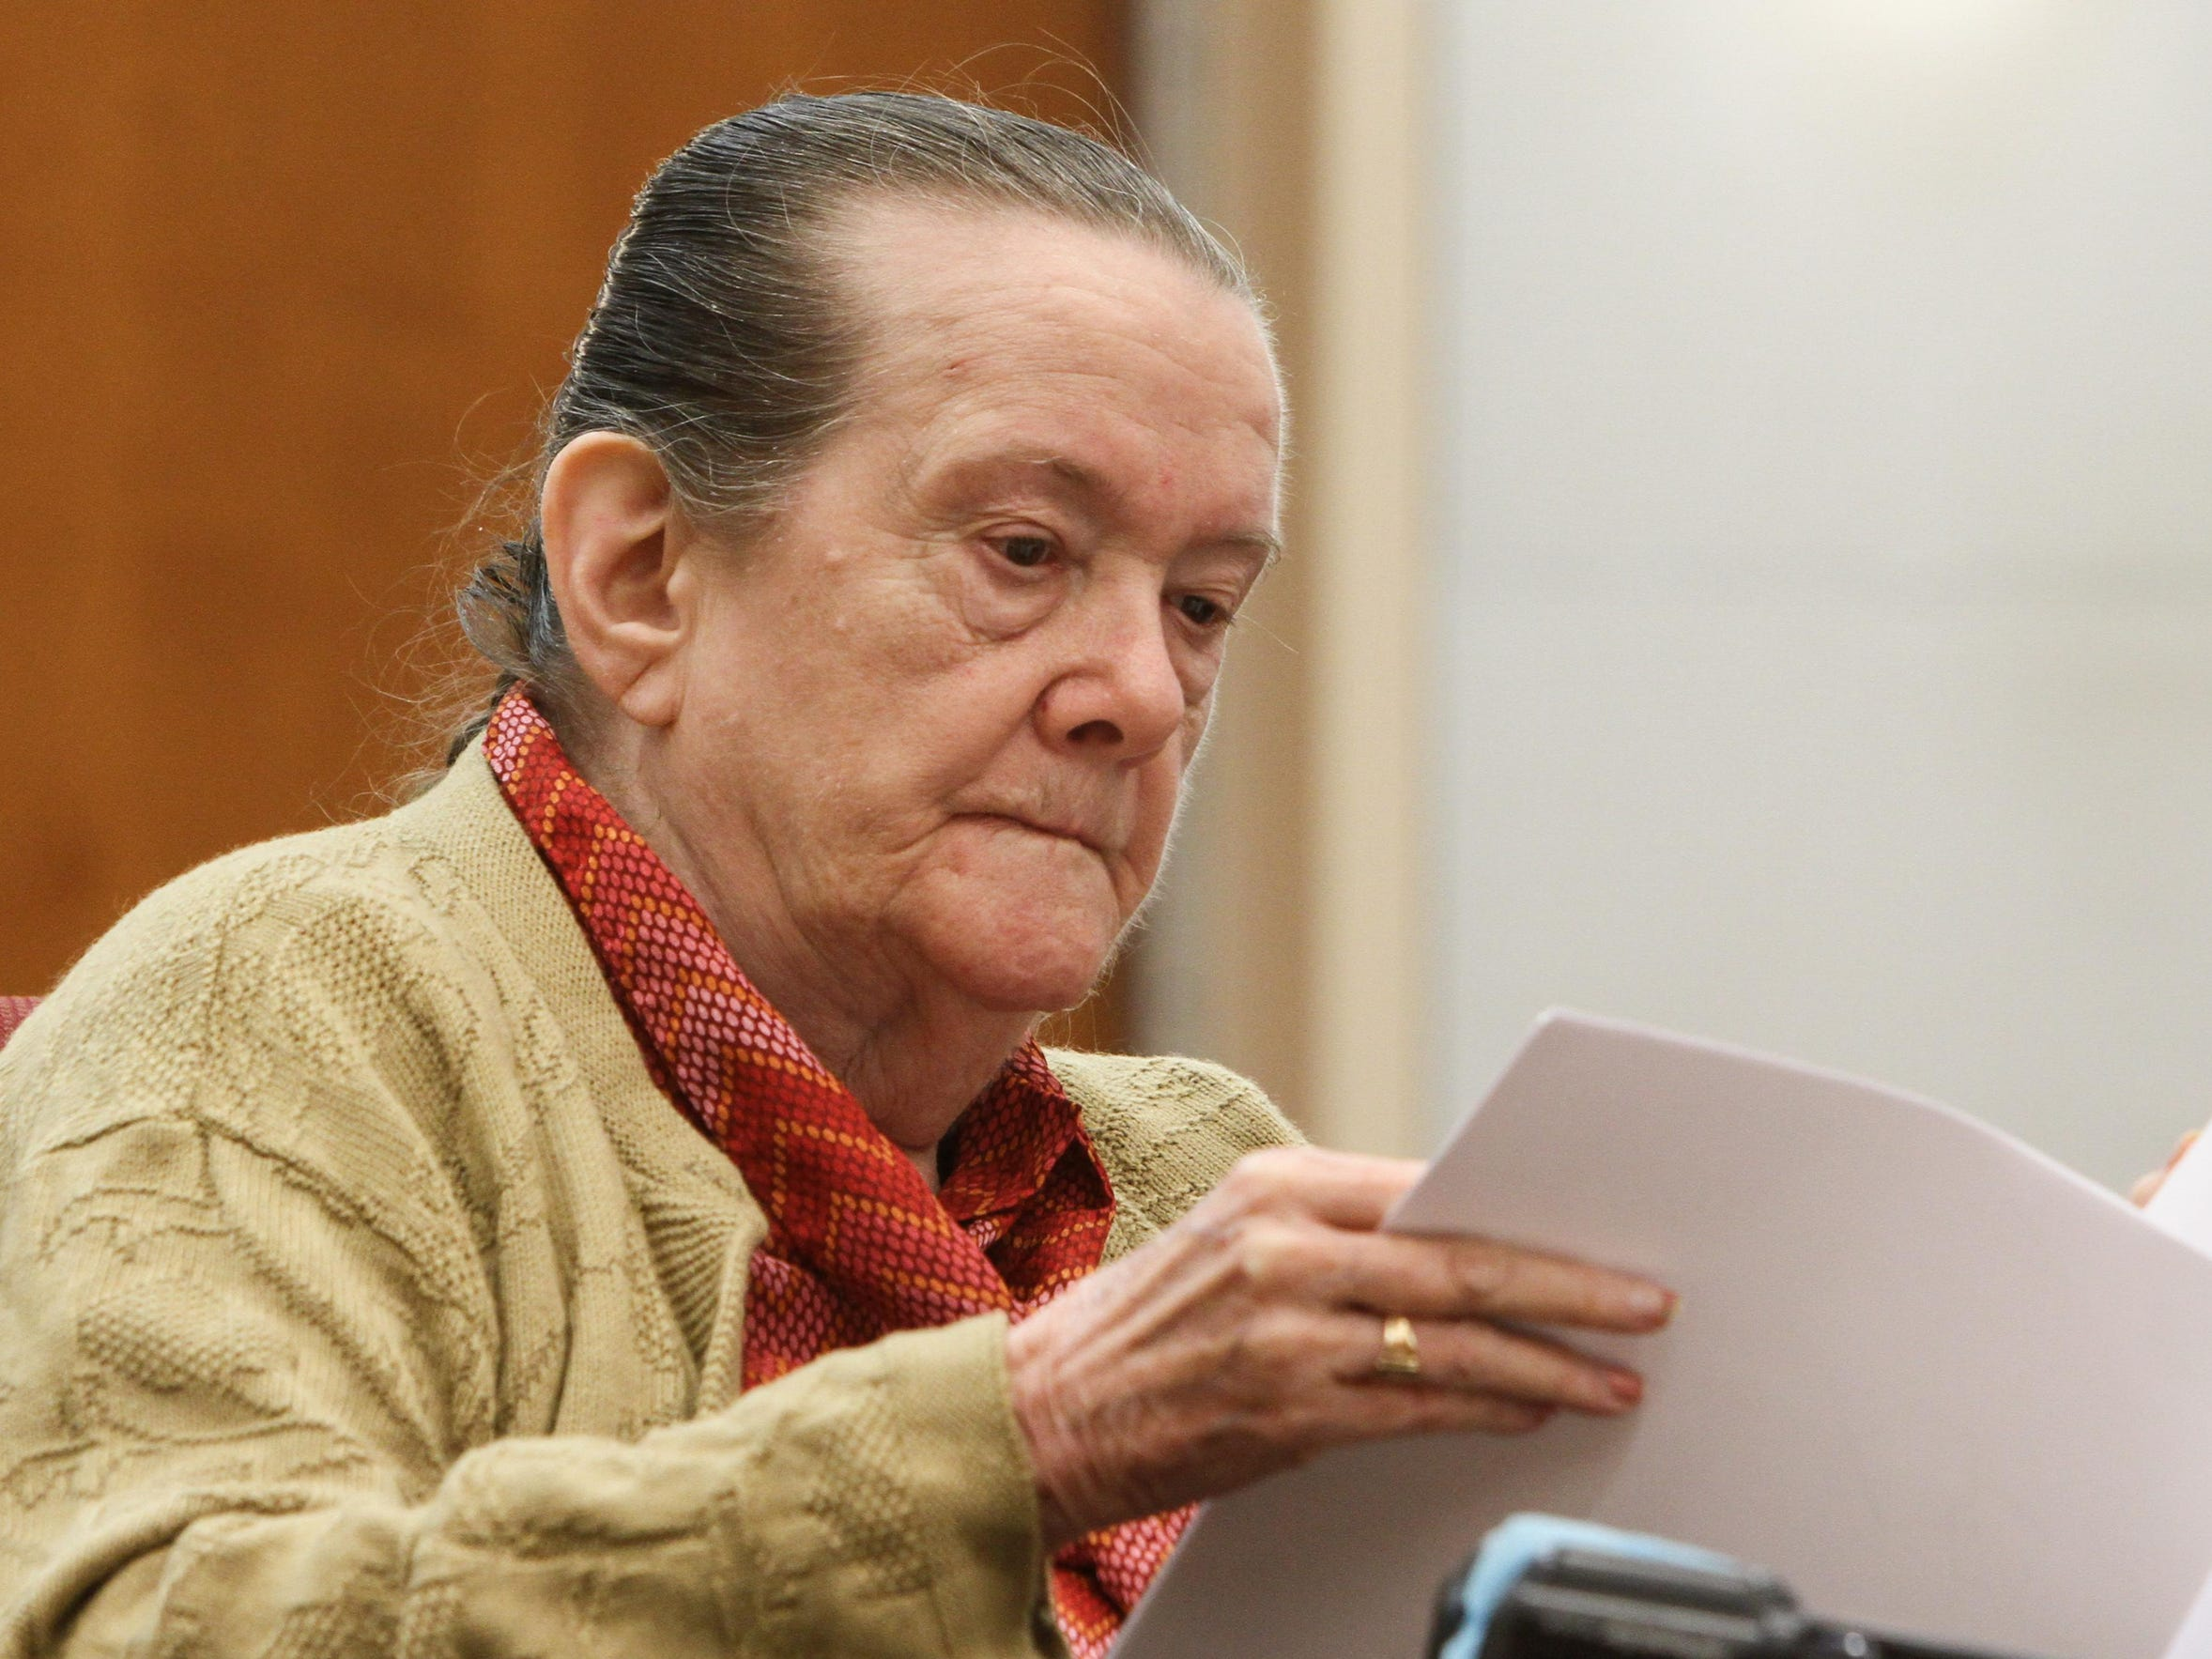 Helen Hugo reads legal documents in court.